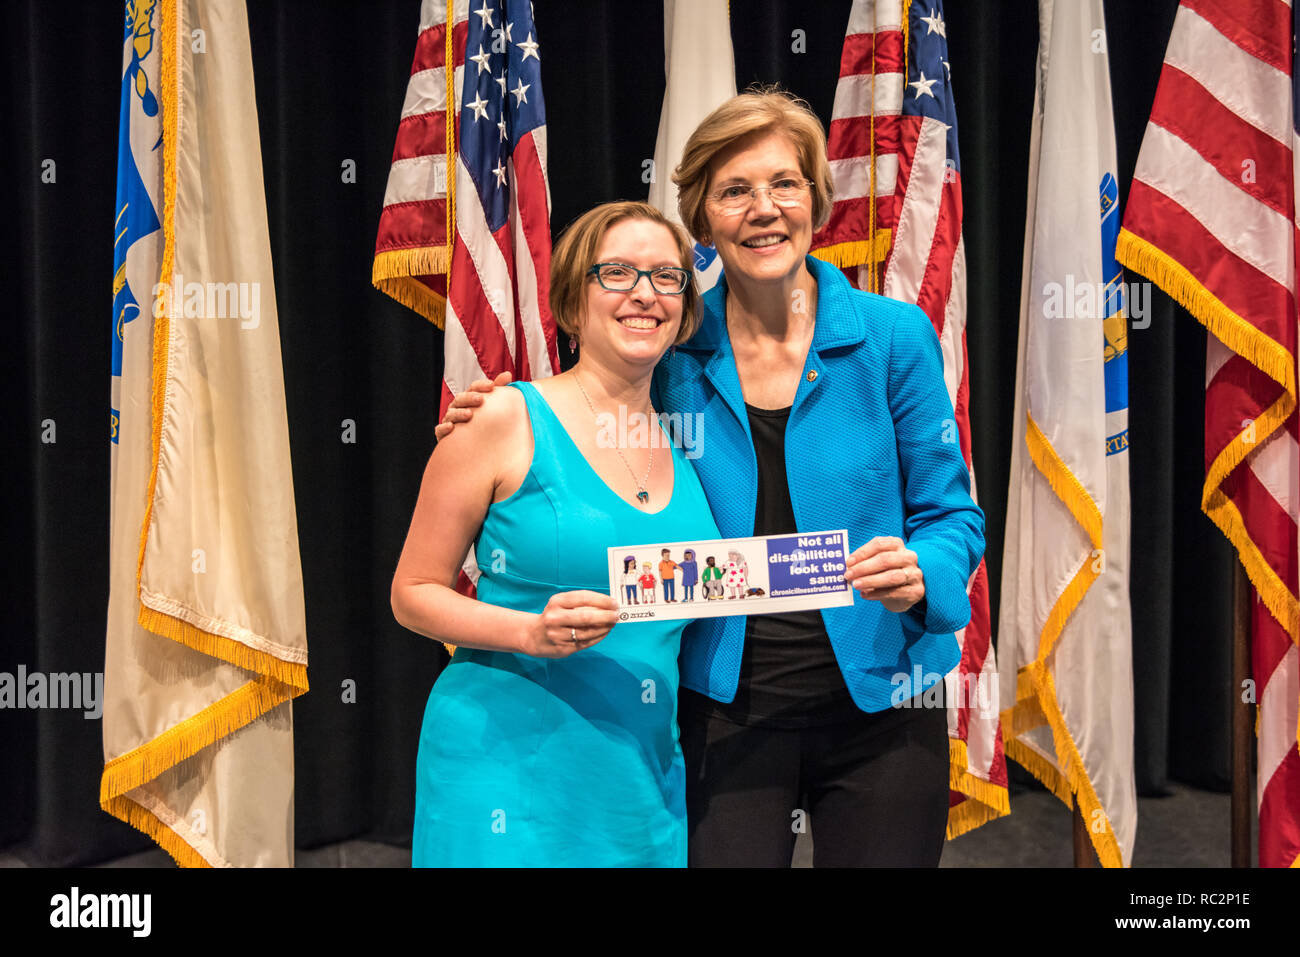 U.S. Senator Elizabeth Warren posing with a supporter and helping hold a sign about Disabilities after her Town Hall speech. - Stock Image